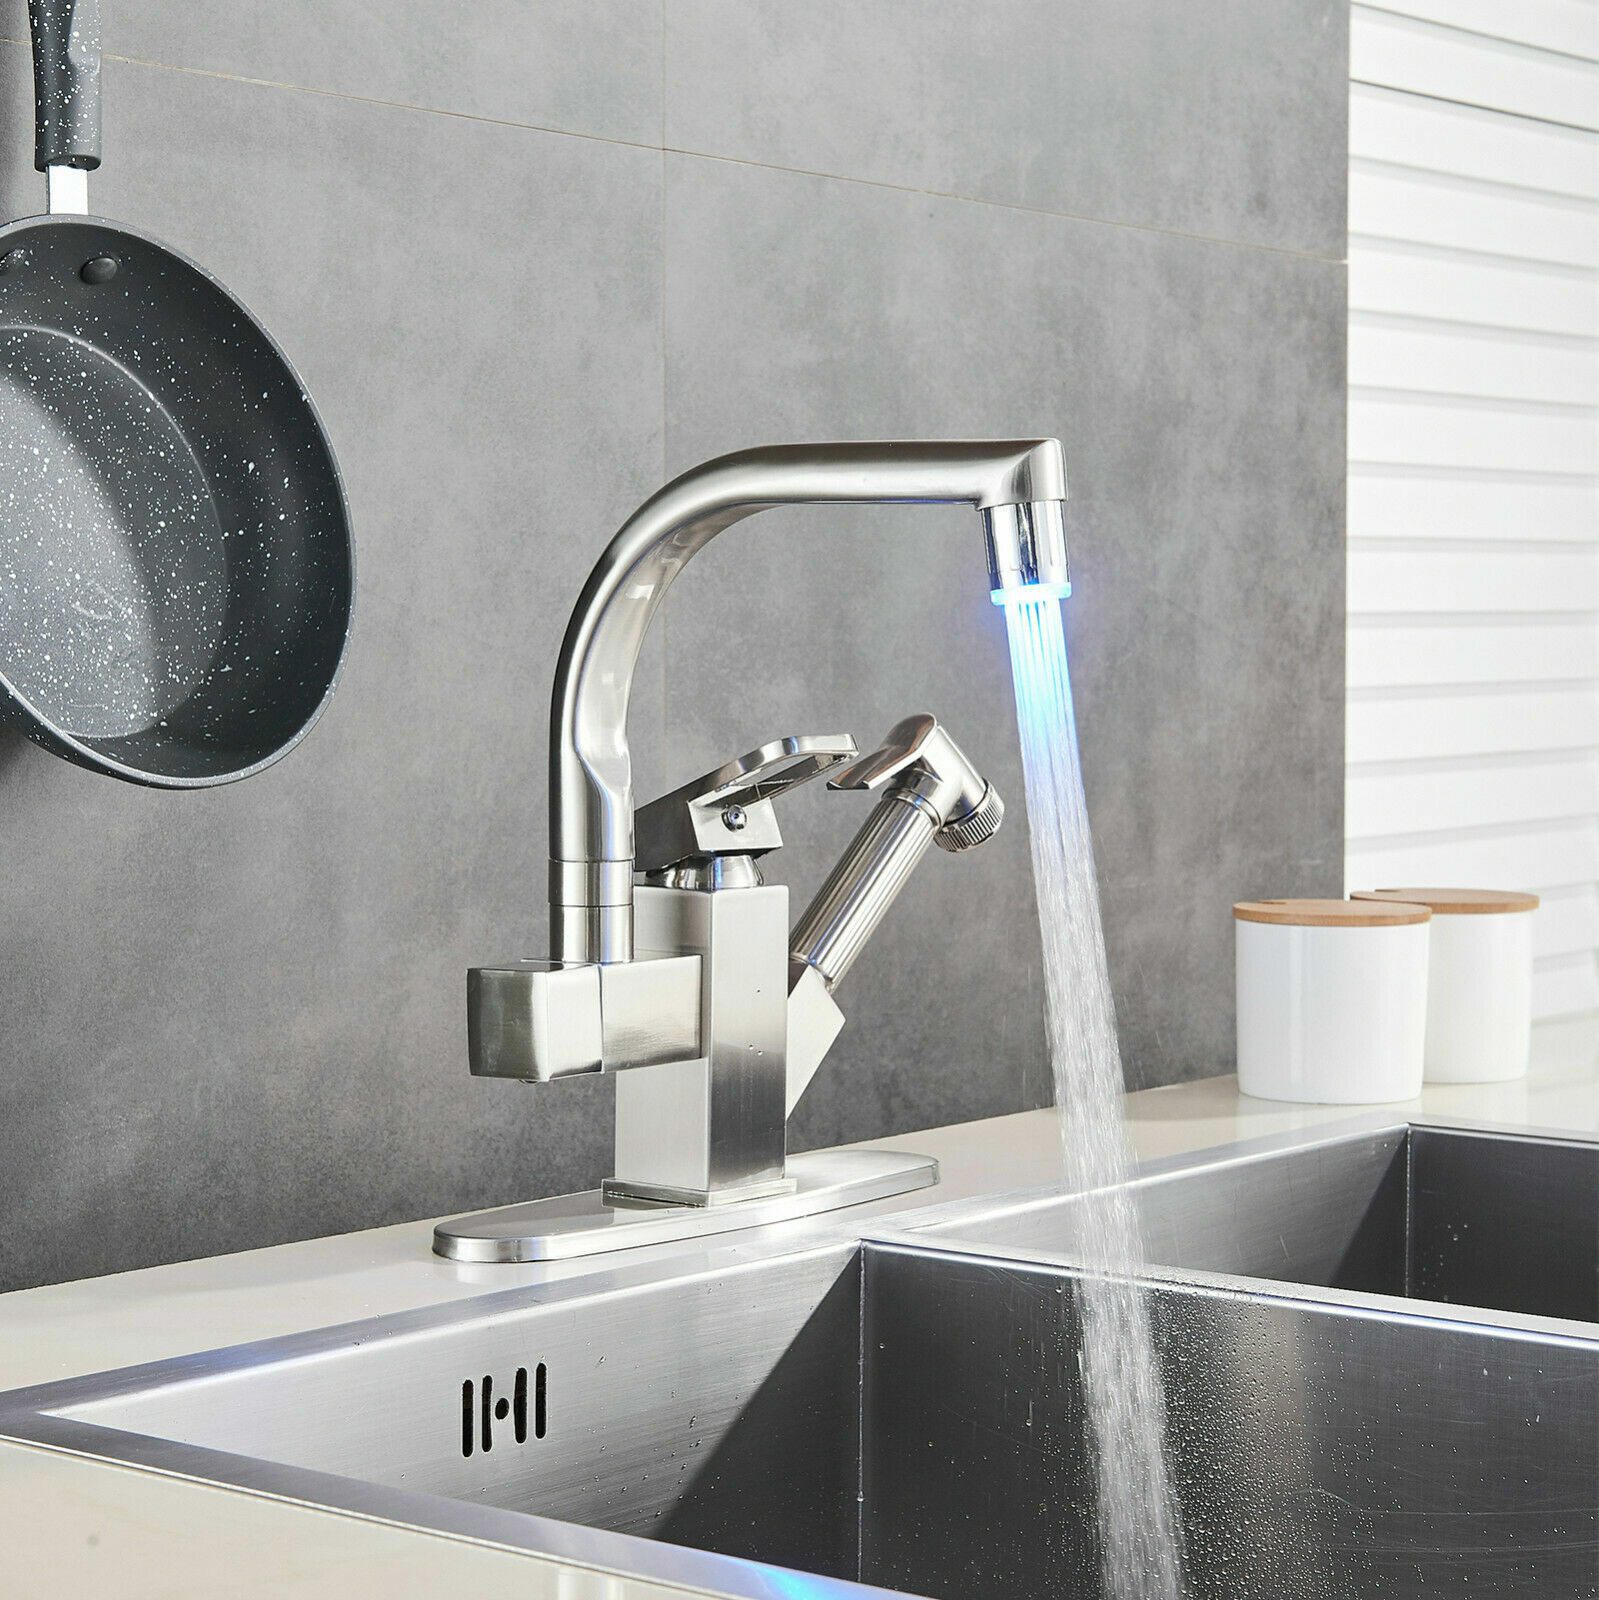 Modern LED Kitchen Sink Faucet Pull Out Sprayer Single Hole Tap W/Plate -Brushed Nickel